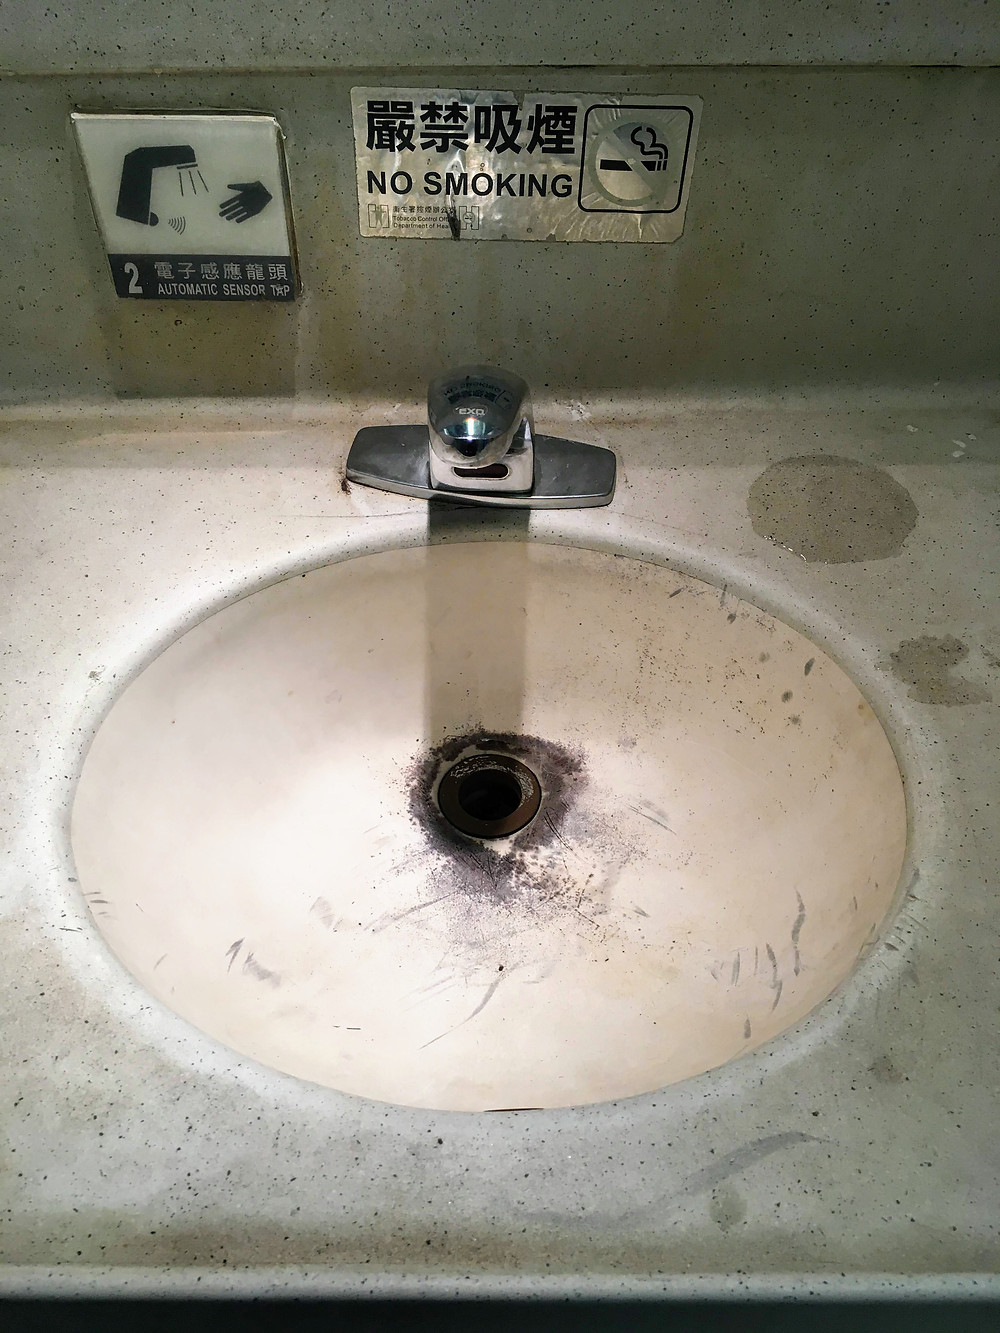 Common Setting of Sink and Tap Found in Country Park's Toilet